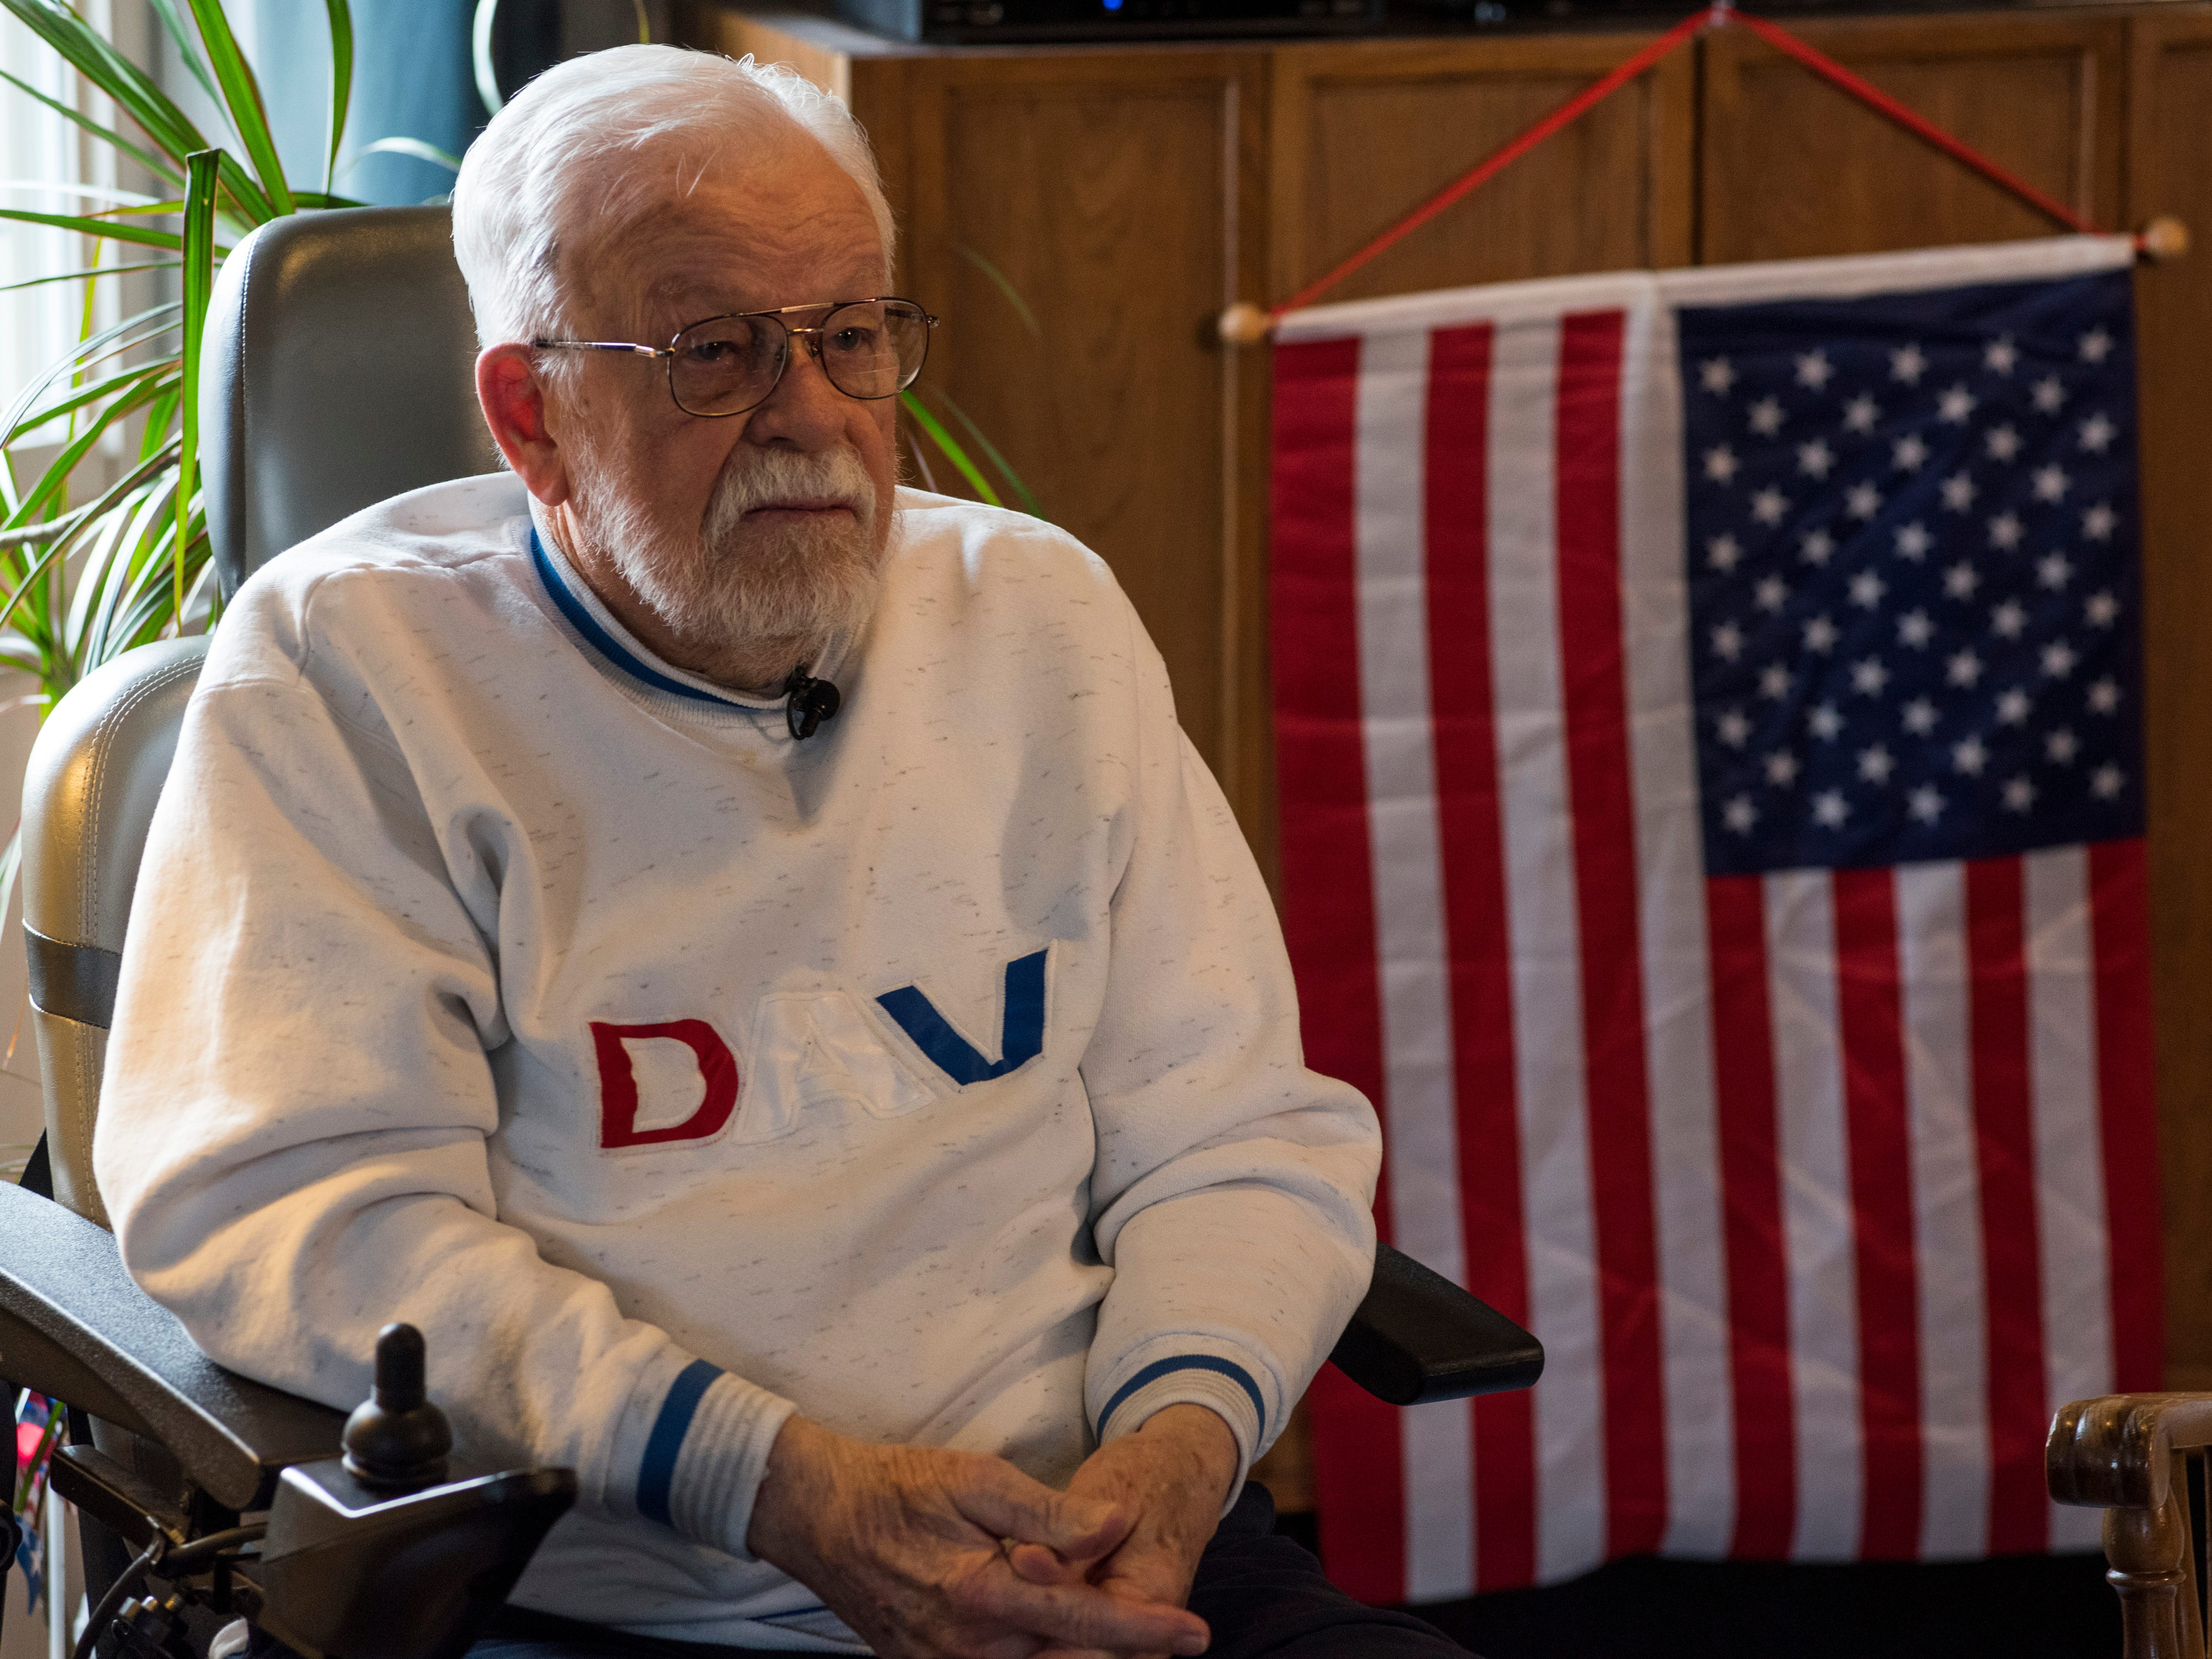 William Turney sits in the dining room of Manor Adult Foster Care  Monday, Nov. 19, 2018 after a recognition ceremony. Turney, a 92-year-old World War II veteran, wanted to be a police officer after the war but couldn't because of height requirements.